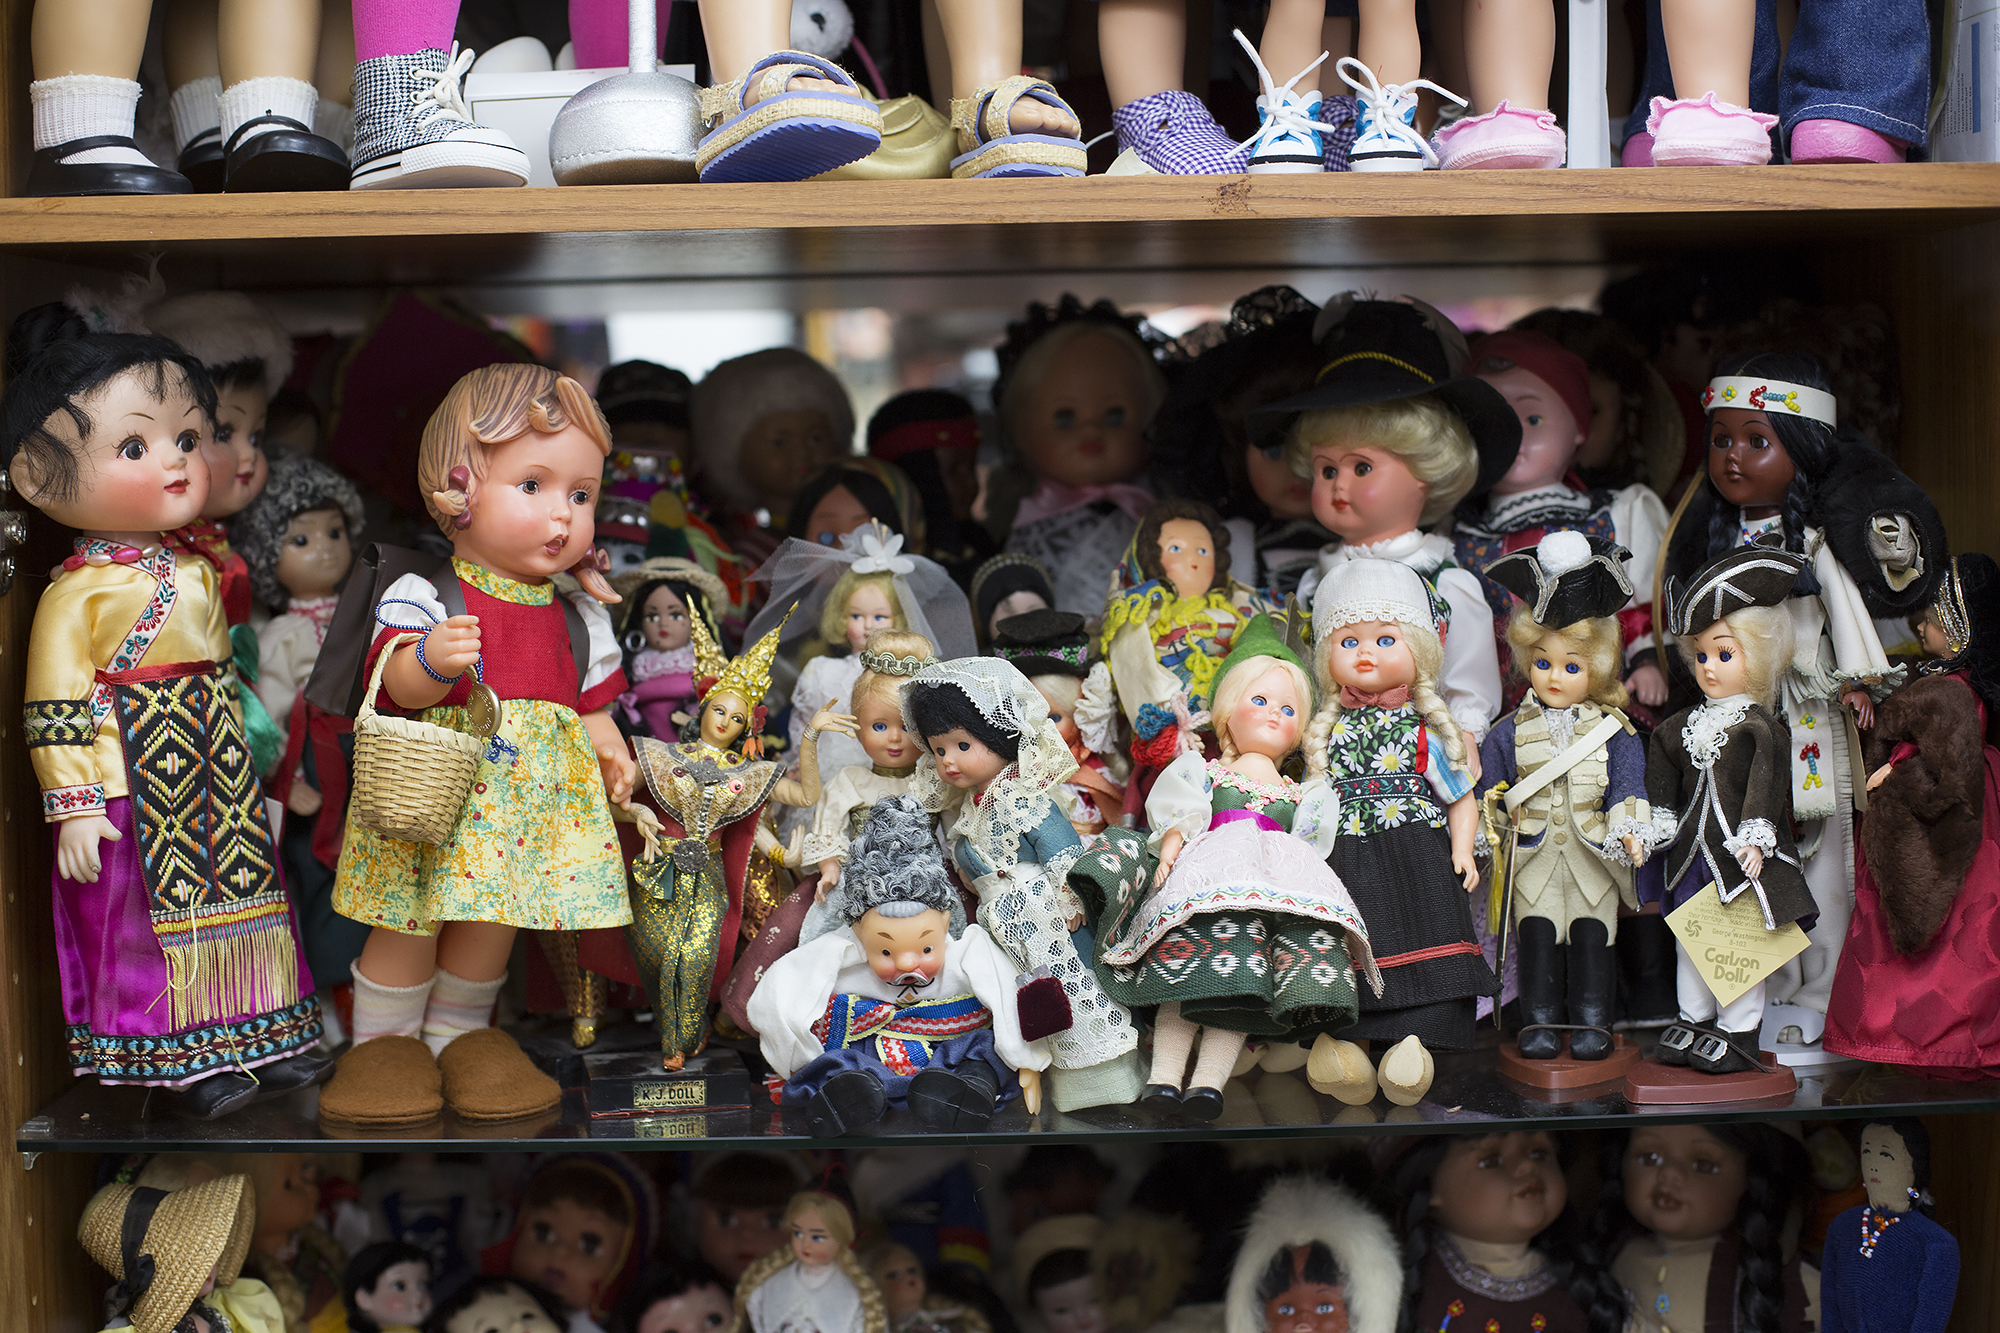 """Judith's national dolls, a collection that began in 1963 when her pen friend's from other countries sent her dolls in national costumes. In the front row is a 1950 12"""" Vinyl M Hummel """"Rosl"""" little school girl by W Eoebel of Germany."""